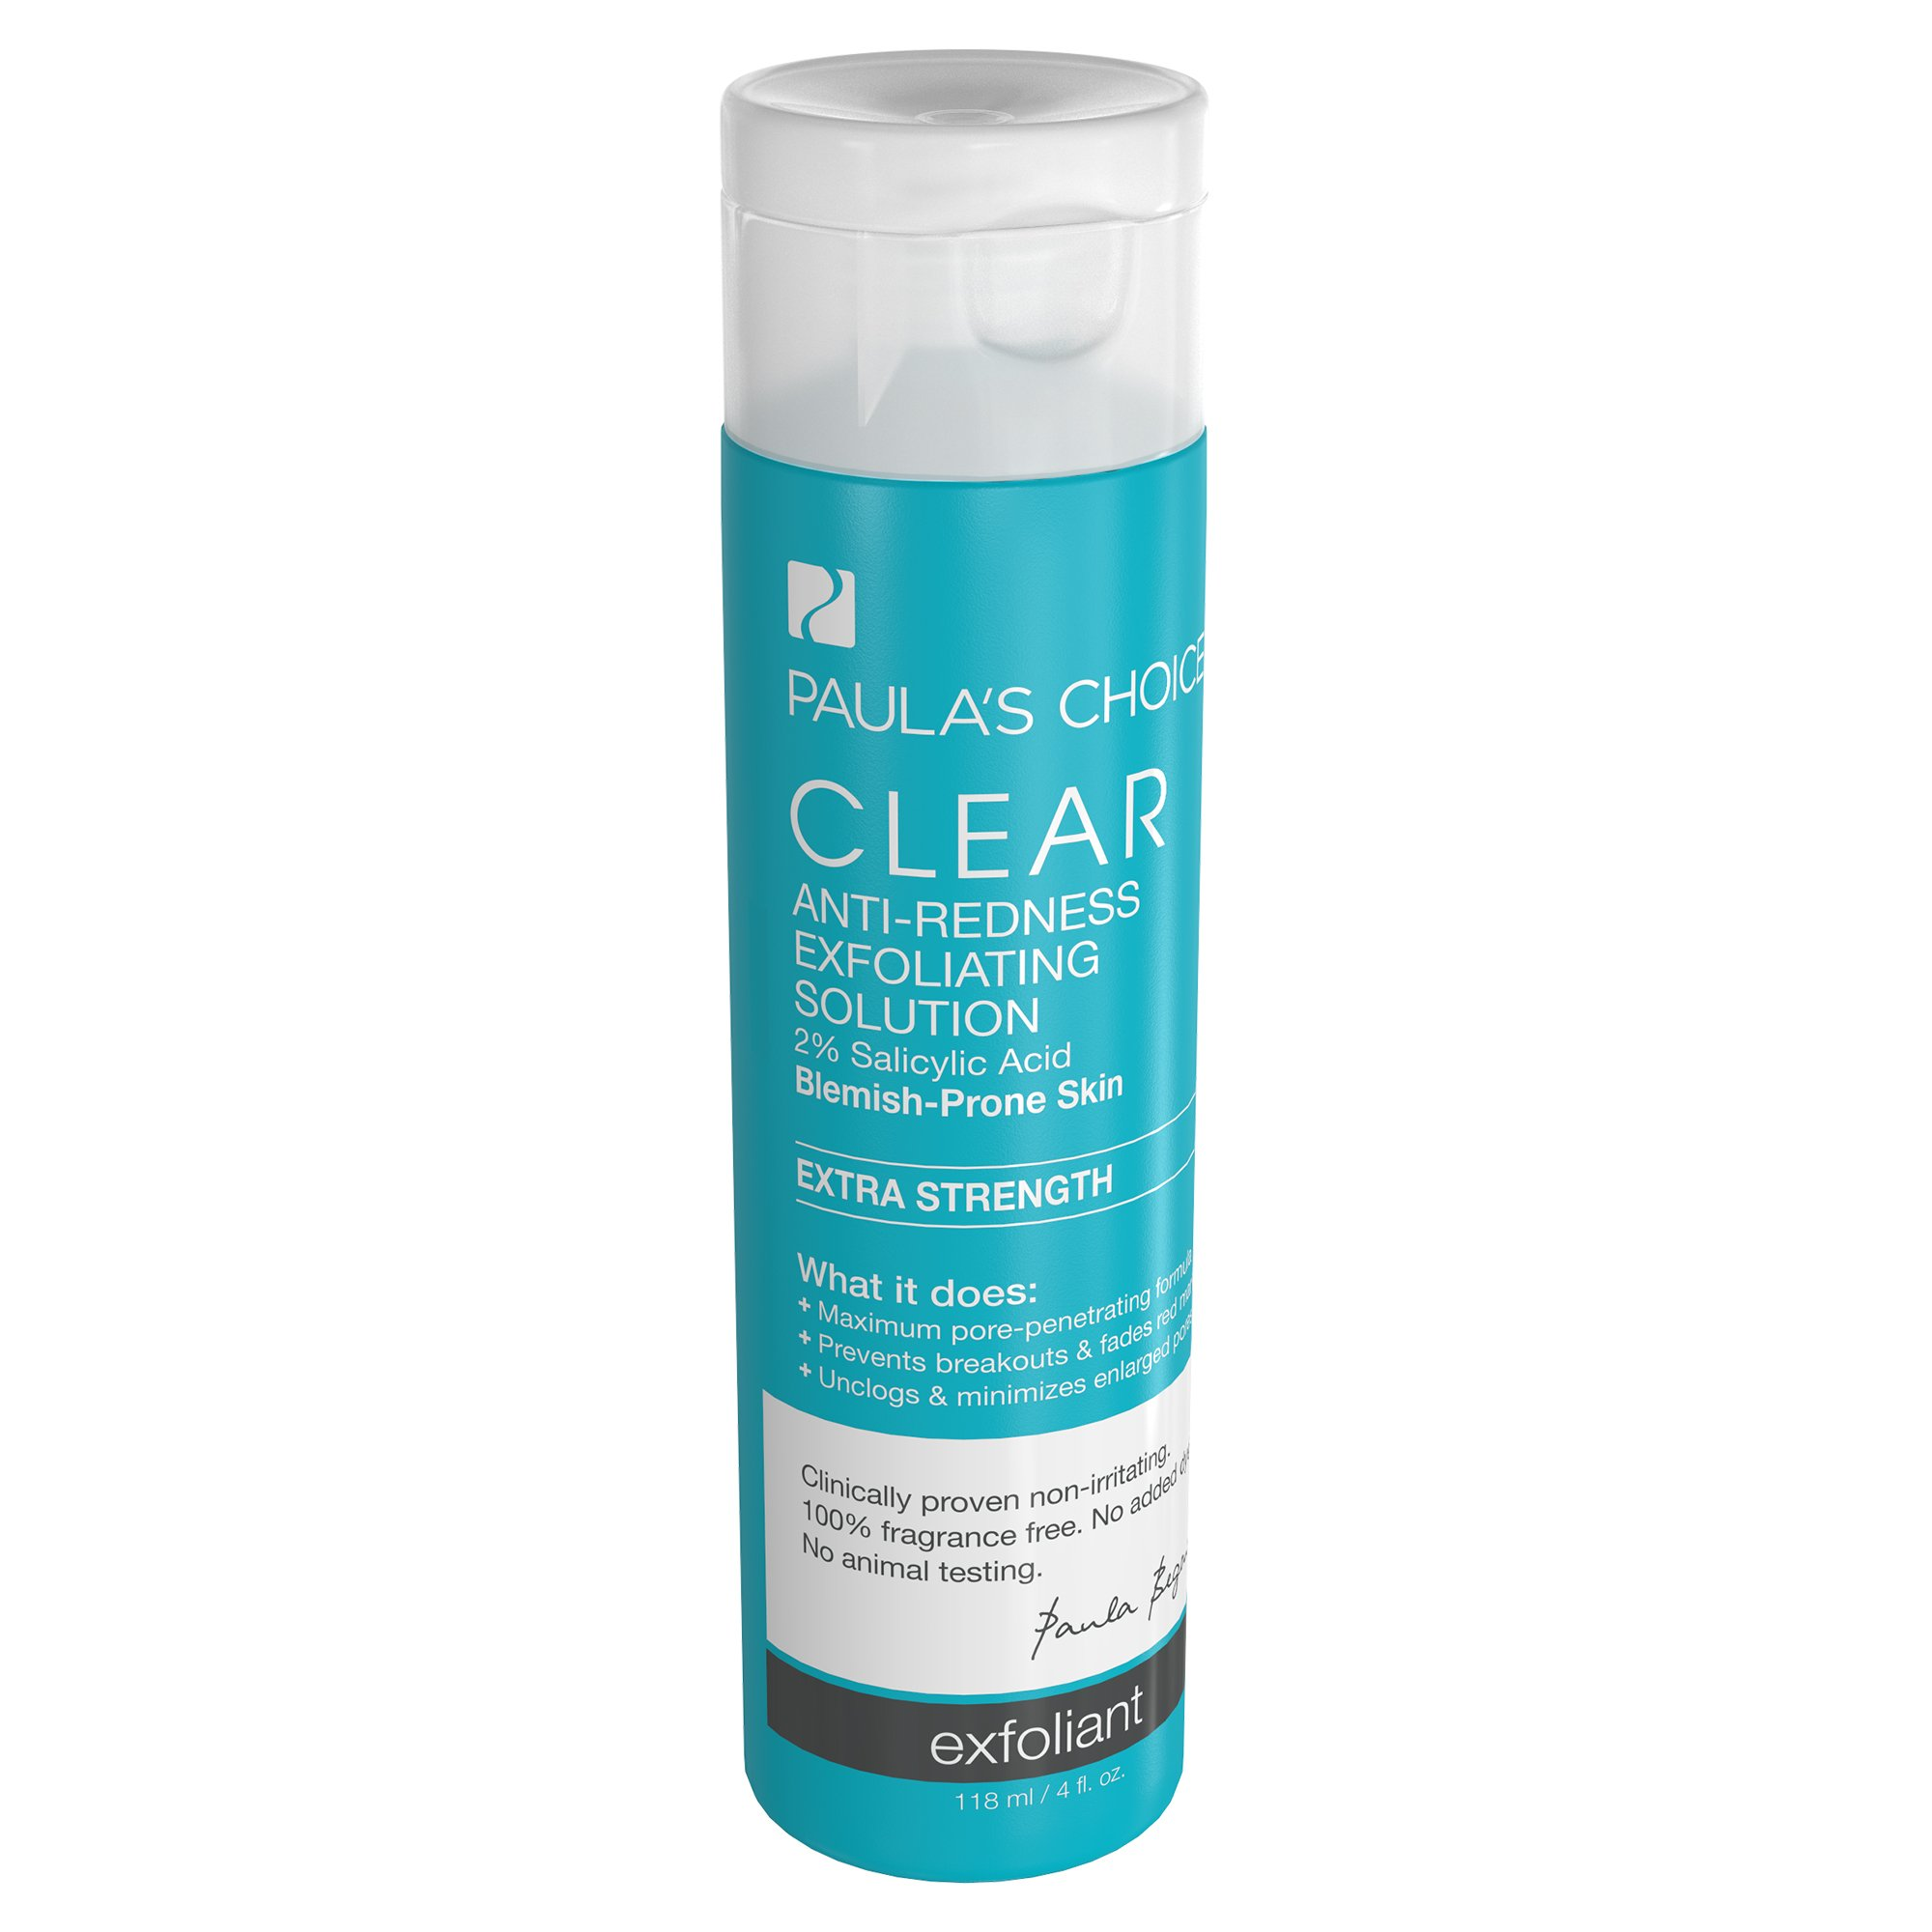 Paula's Choice-CLEAR Extra Strength Anti-Redness Exfoliating Solution with 2% BHA Salicylic Acid, 4 Ounce Bottle Non-Abrasive Face Exfoliator by Paula's Choice (Image #2)